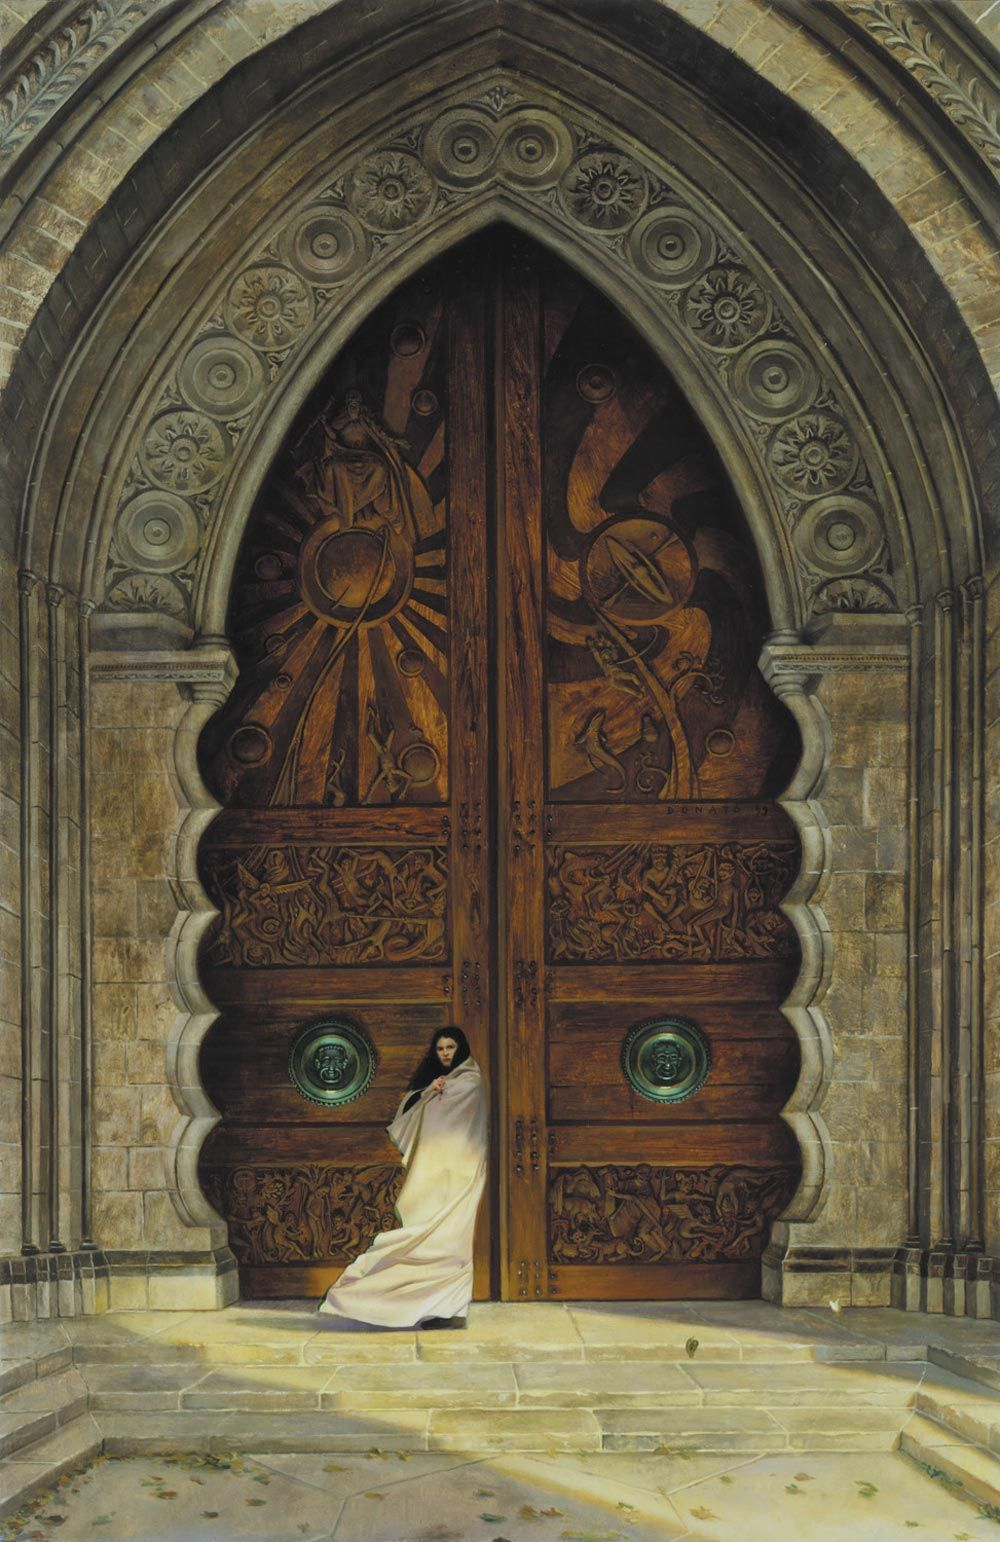 The doors of obernewtyn by donato giancola oil on paper mounted on